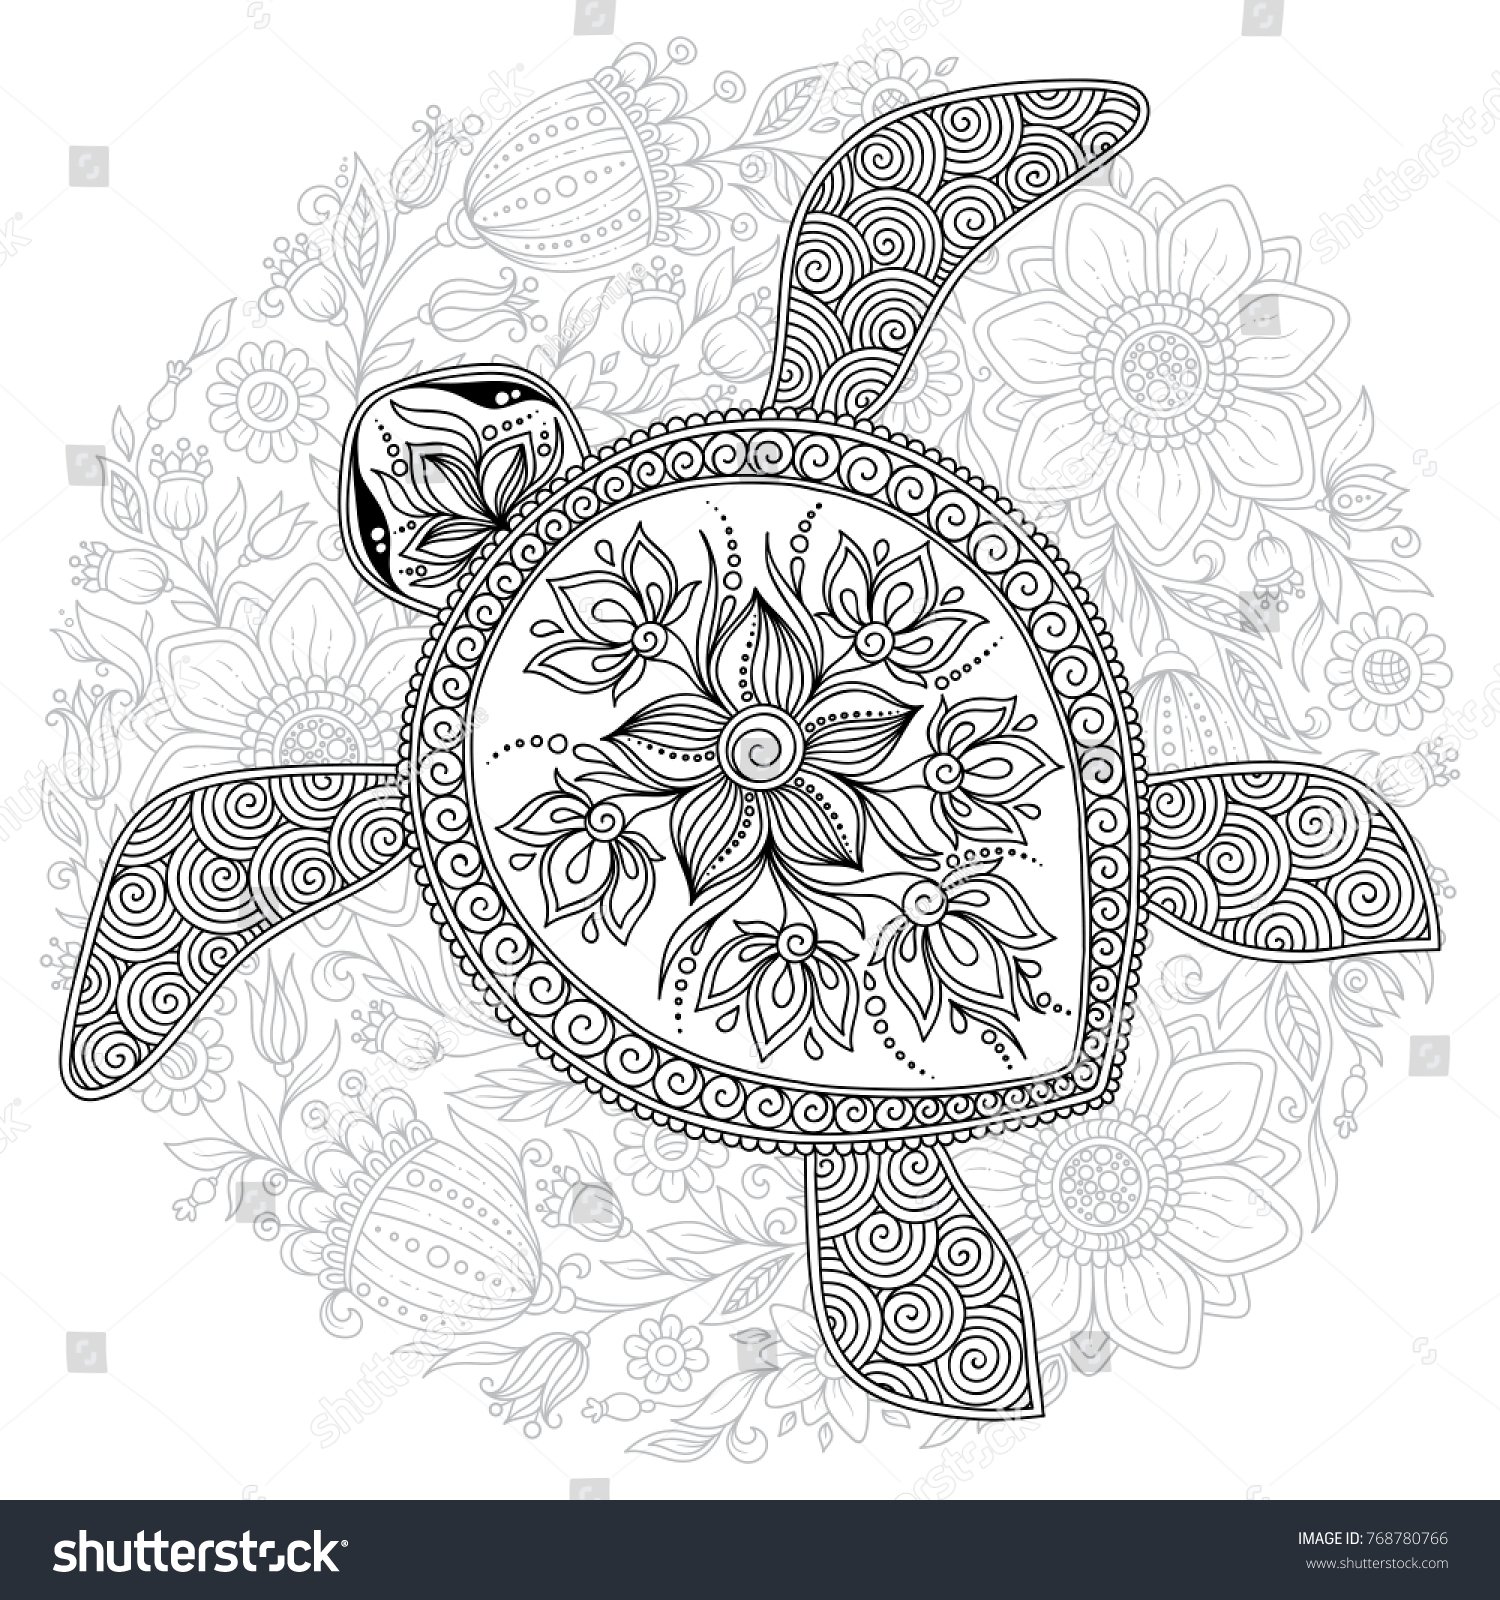 Illustration Of Sea Turtle For Coloring Book Pages Kids And Adults Tattoo Shirt